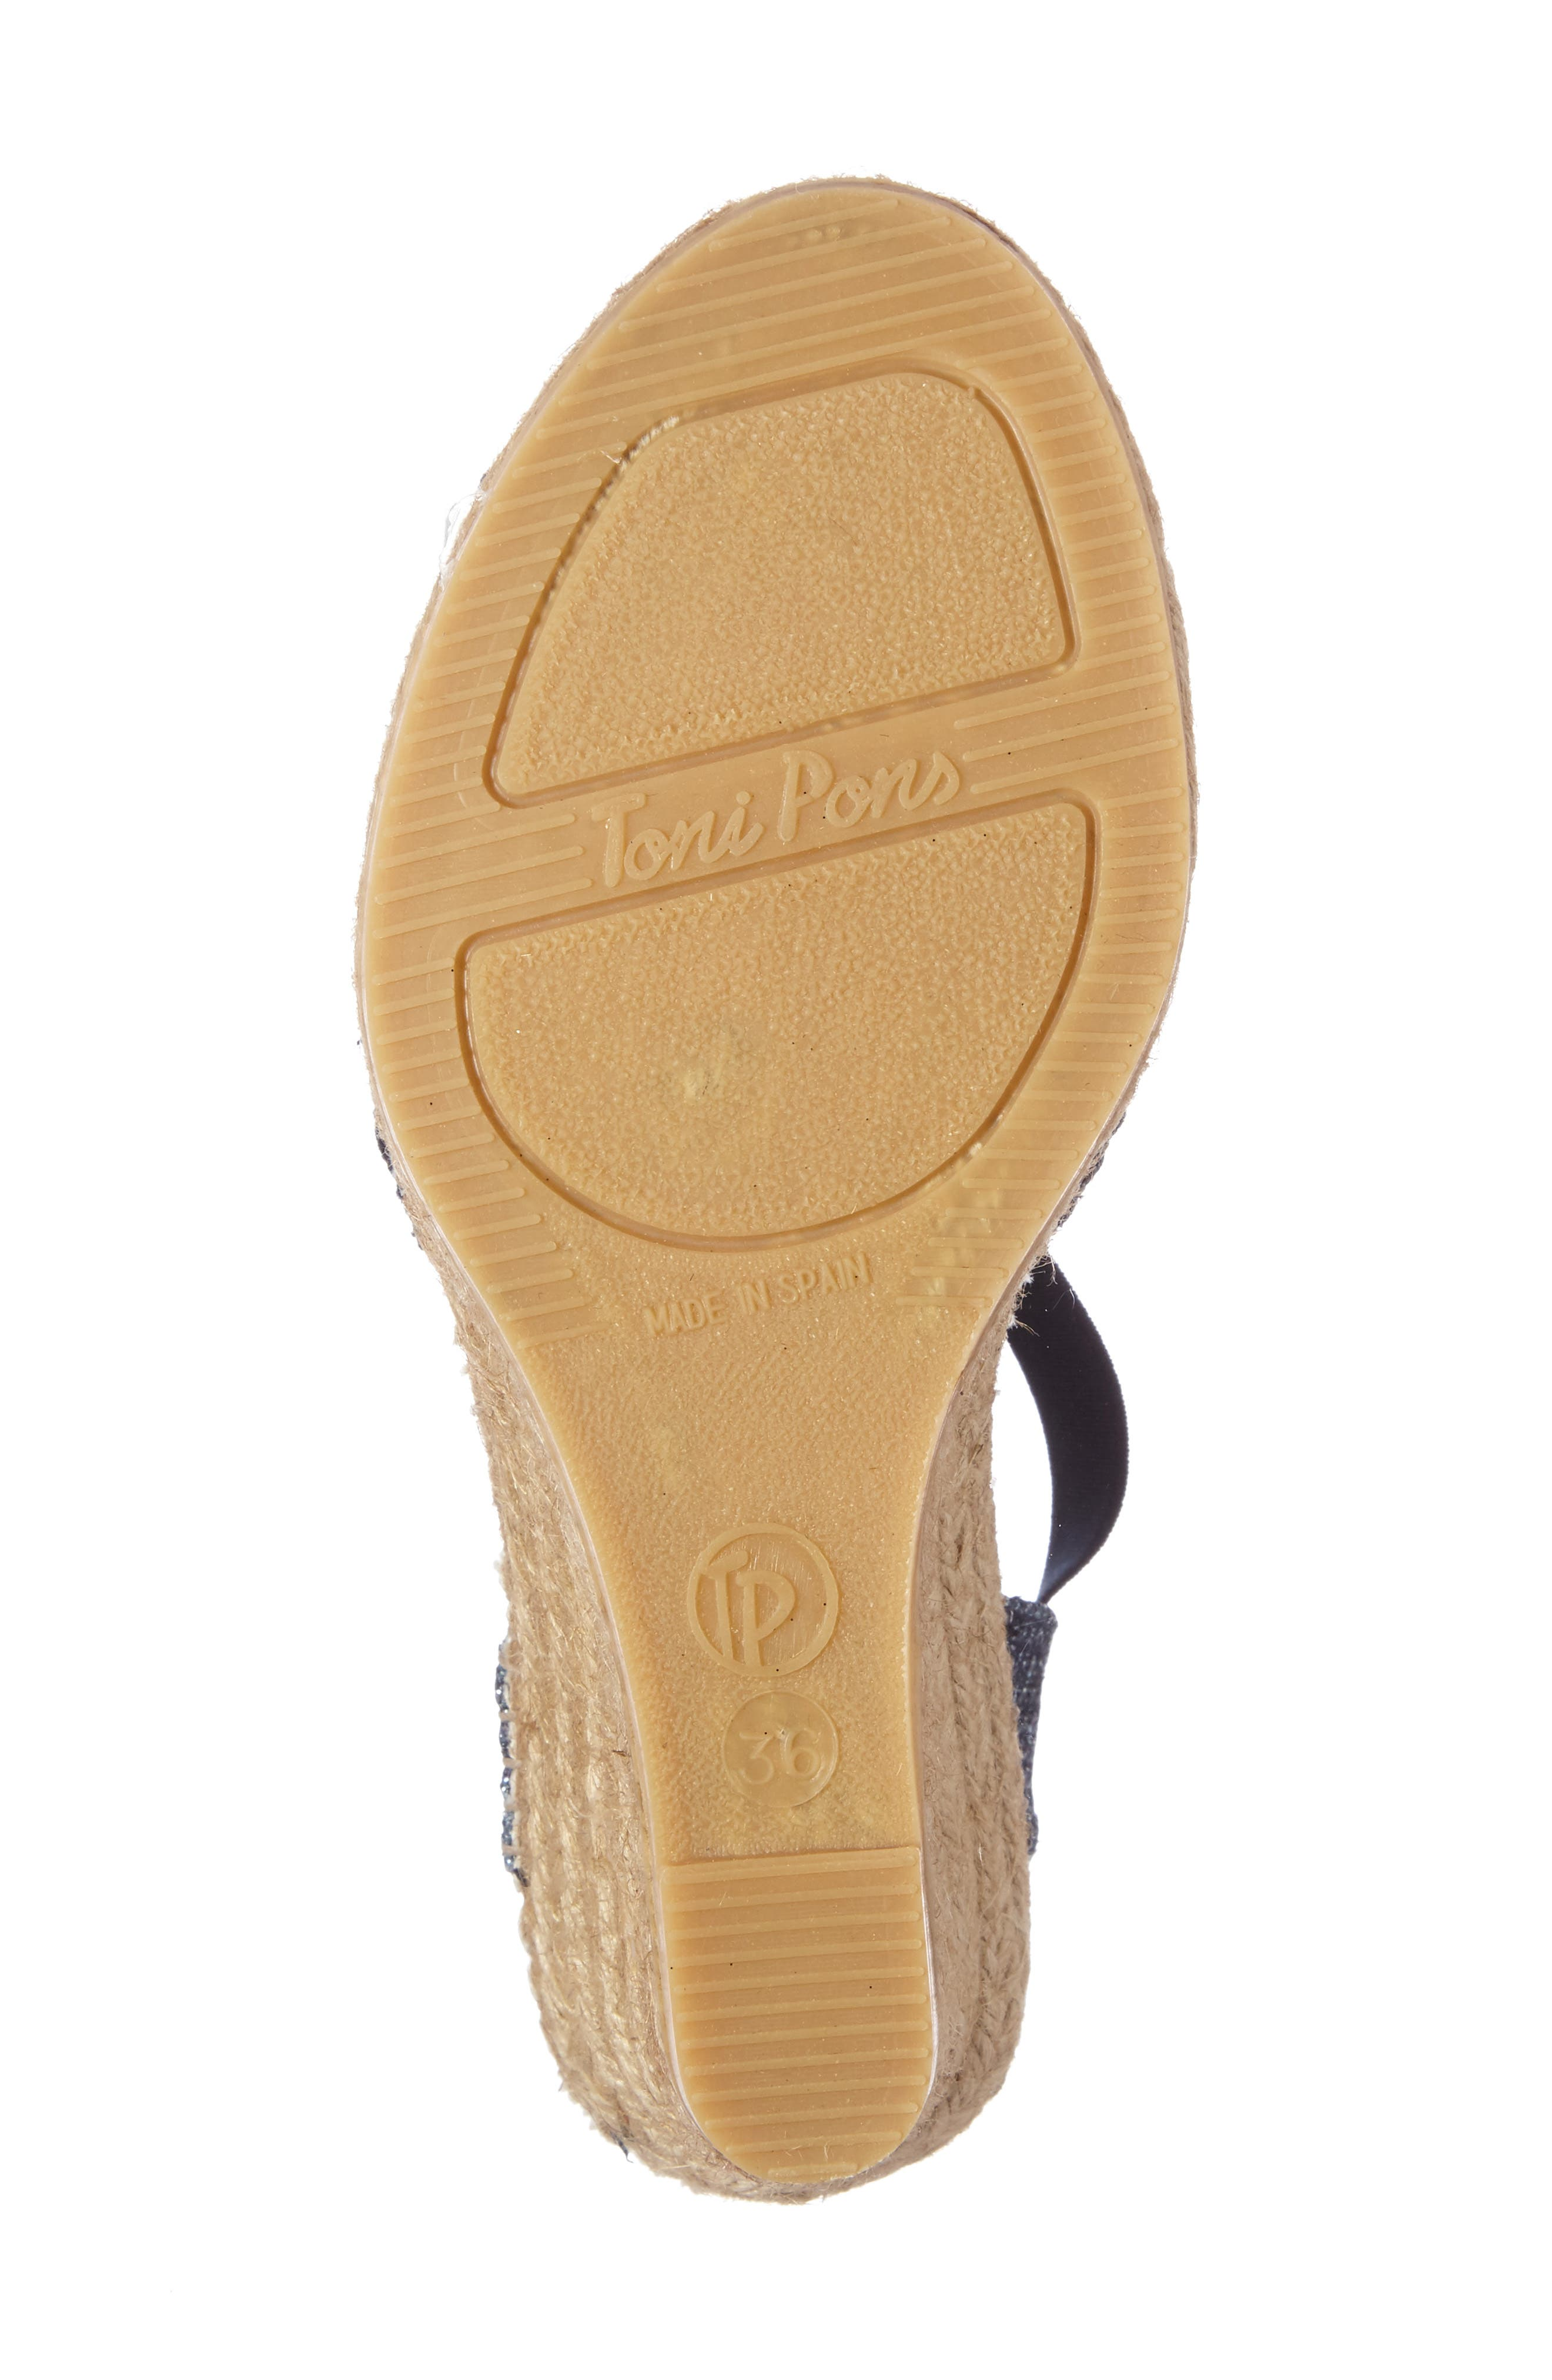 Sol Wedge Espadrille Sandal,                             Alternate thumbnail 4, color,                             NAVY FABRIC